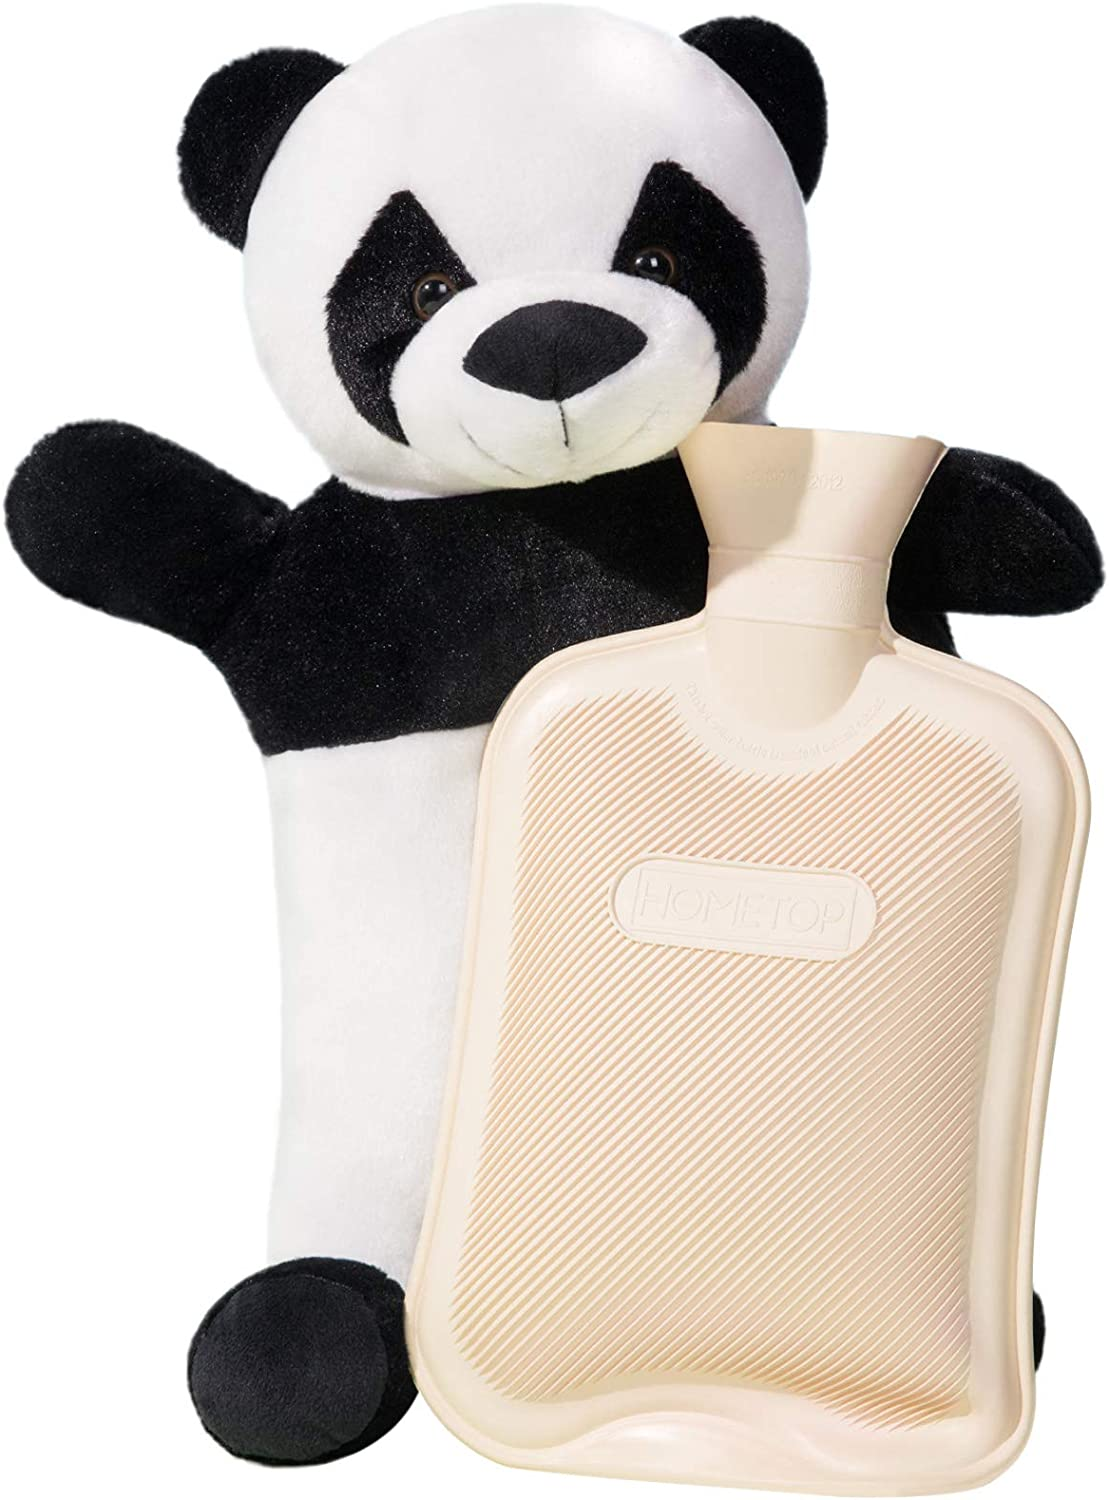 04 1000ML Classic Rubber Cold or Hot Water Bottle with Soft Plush Cute Panda Cover